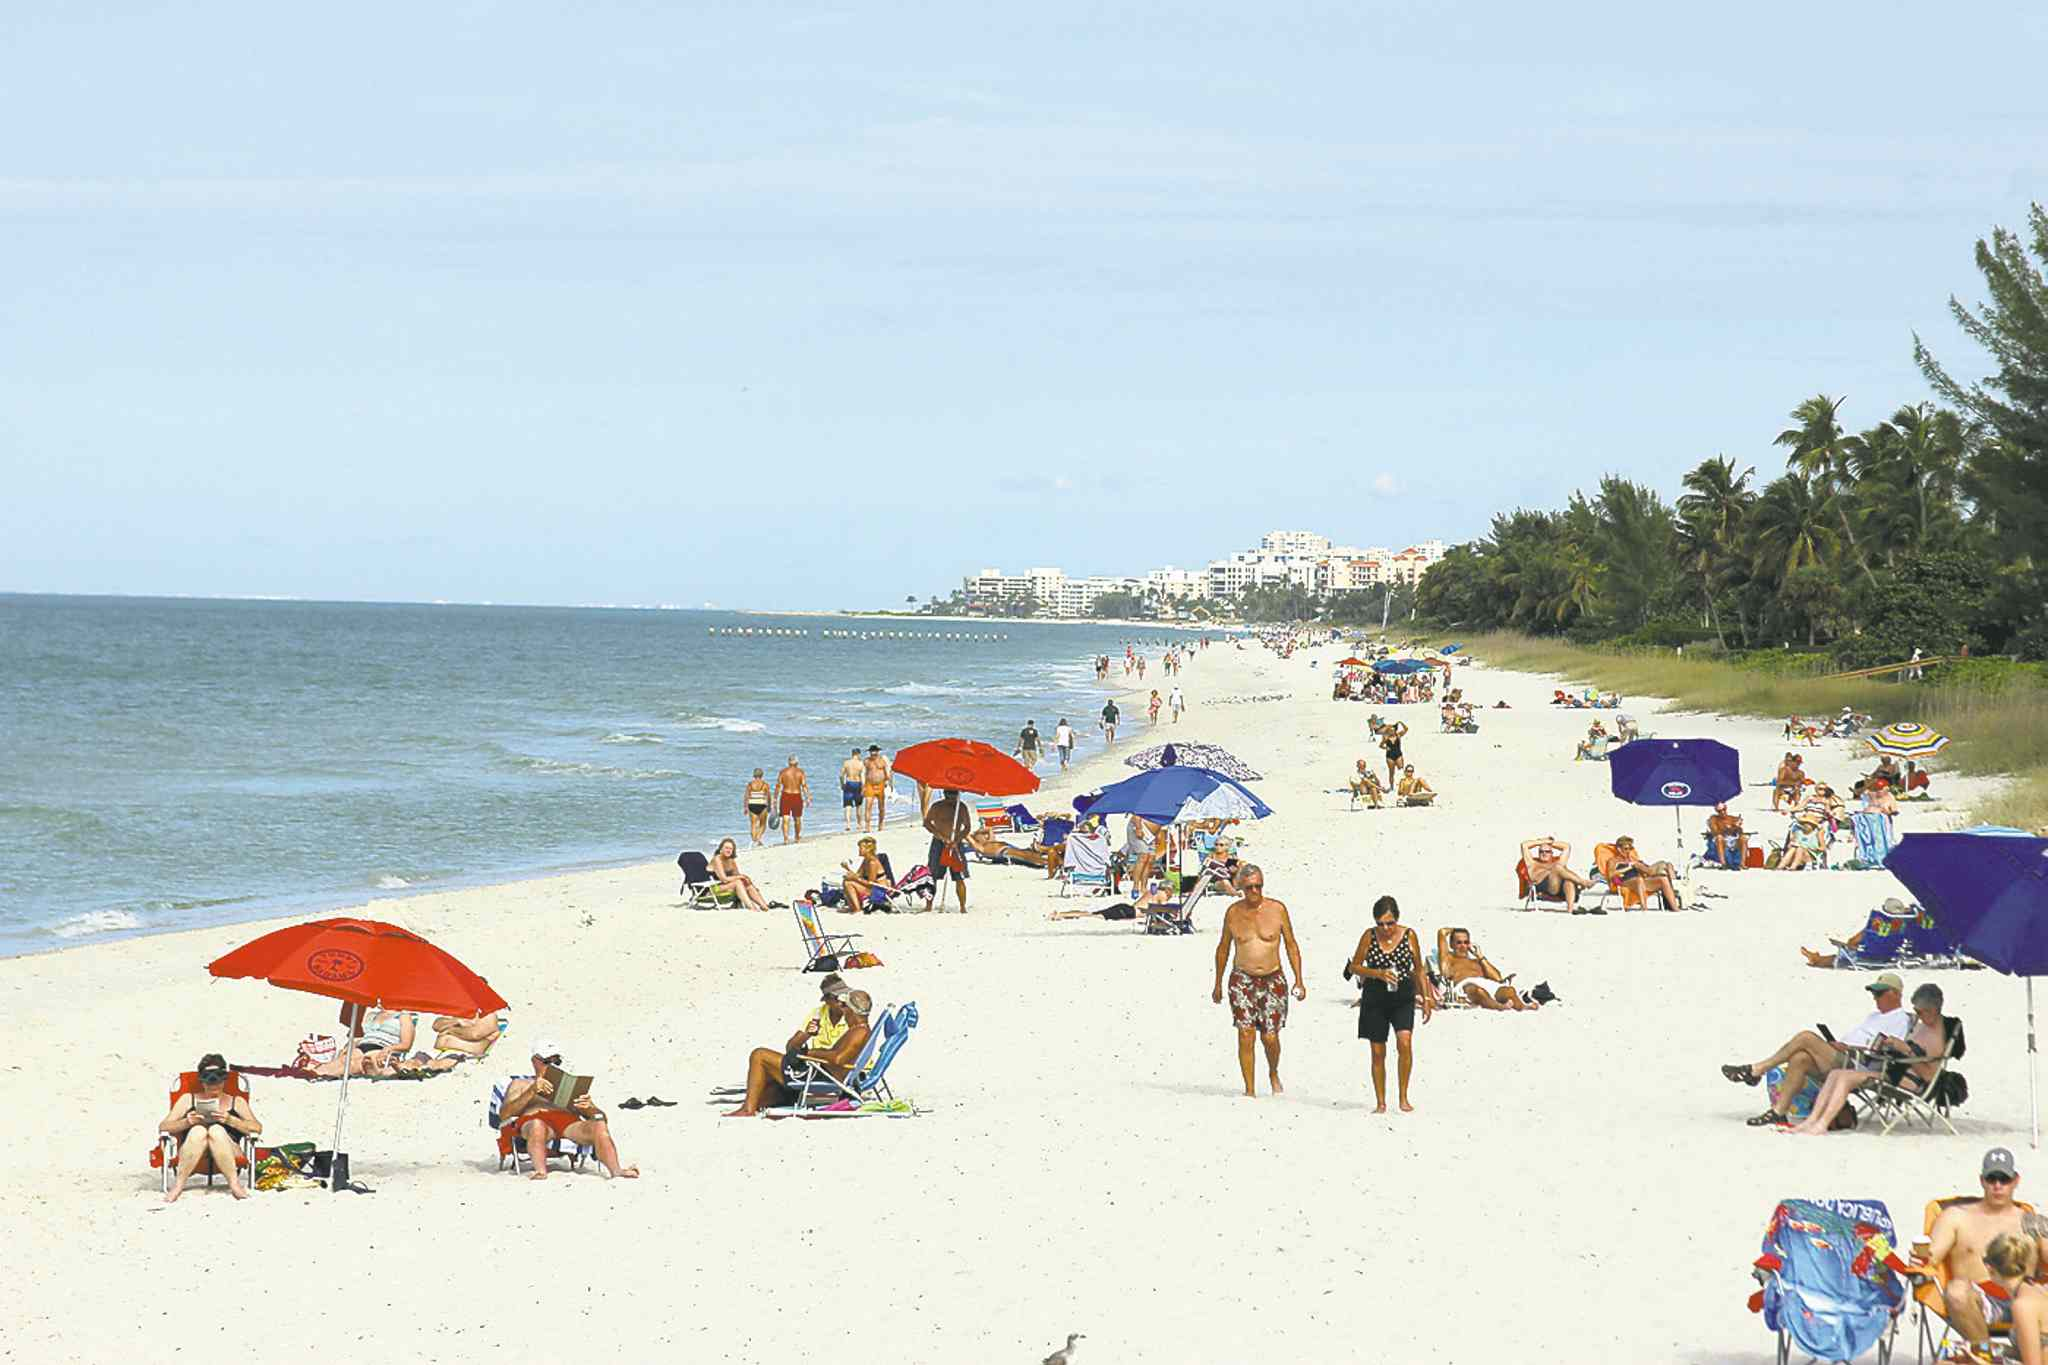 Beachgoers enjoy the sand and surf in Naples, Florida.